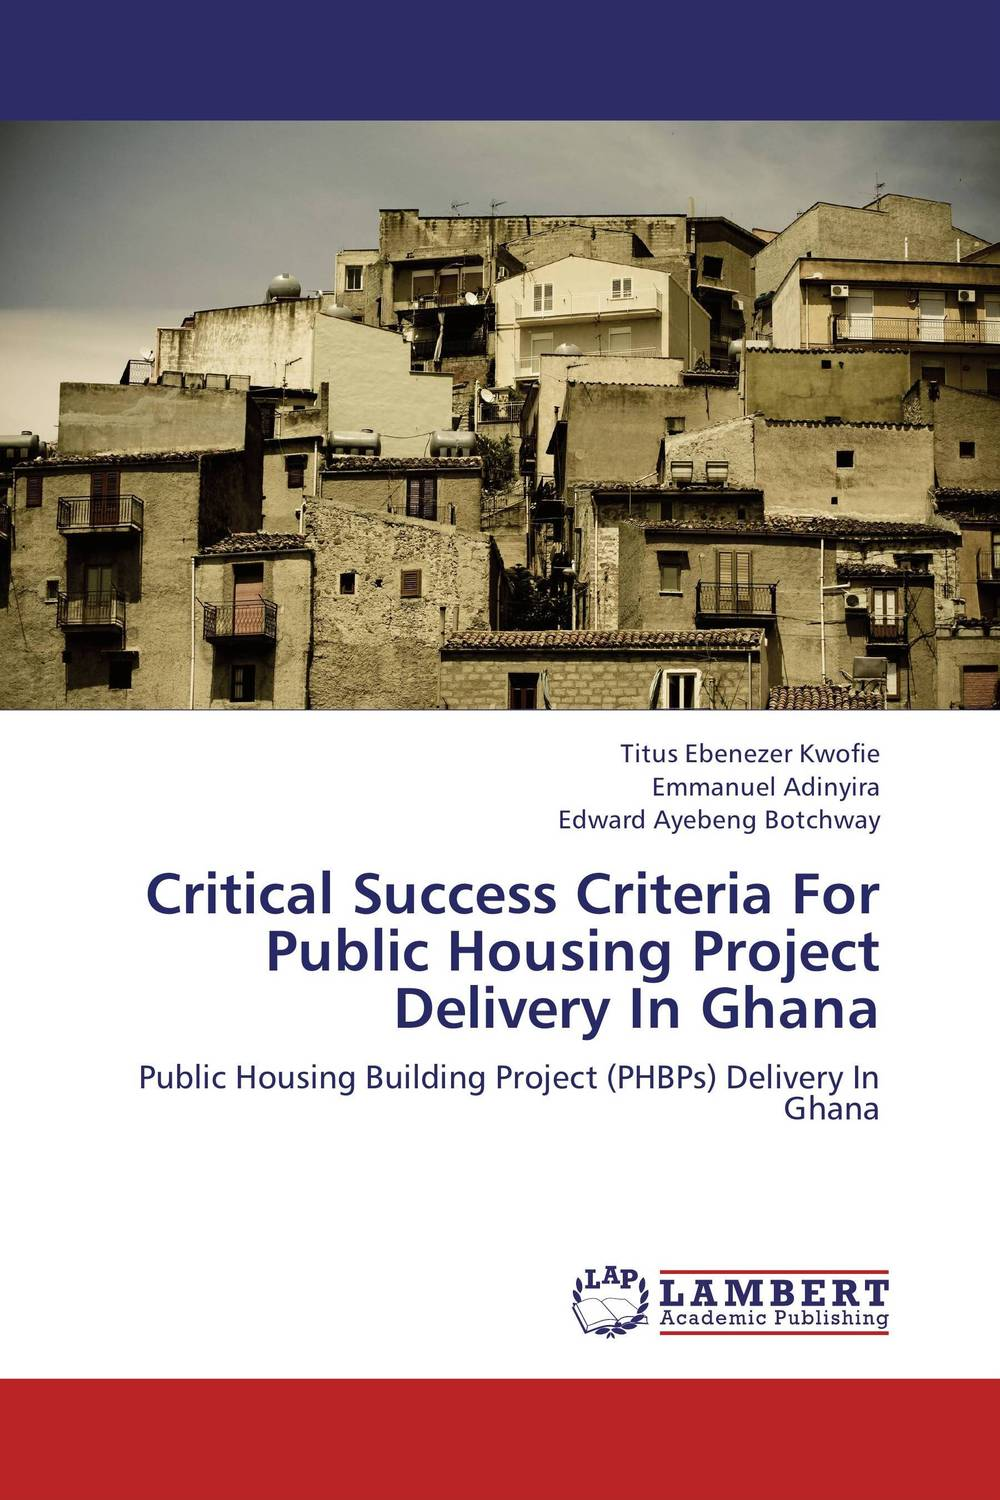 Critical Success Criteria For Public Housing Project Delivery In Ghana supervised delivery services in ghana